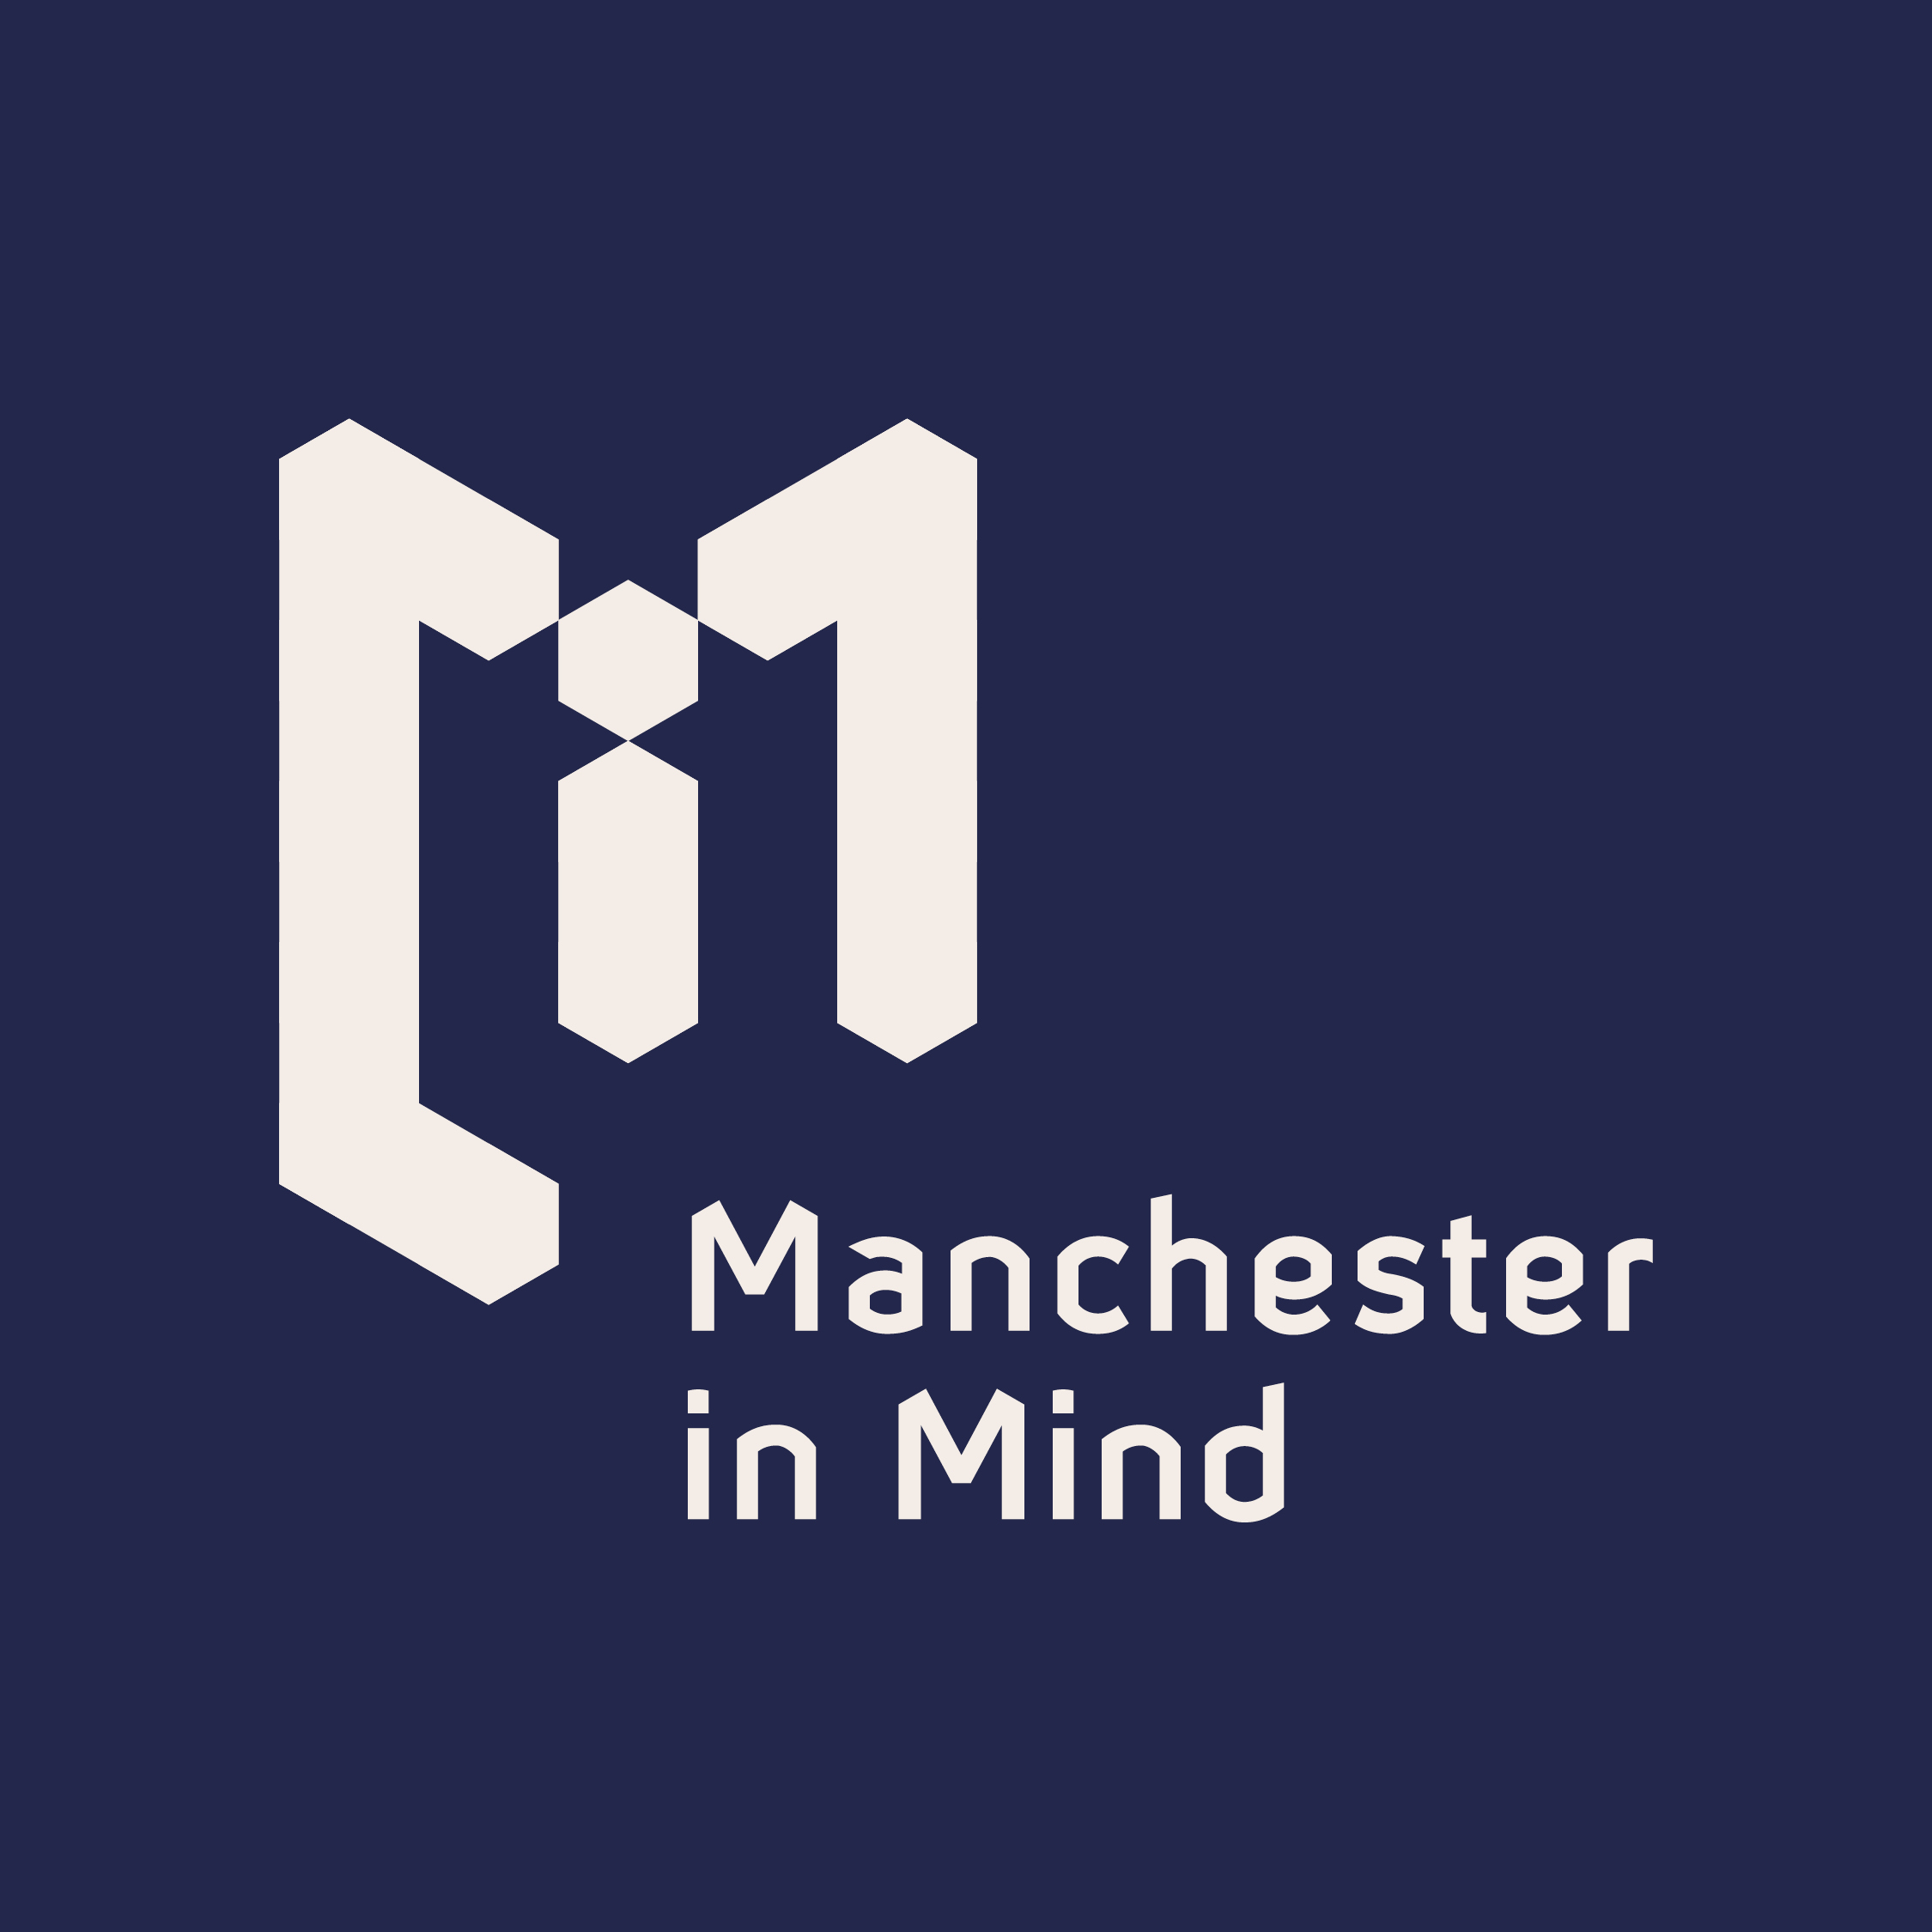 Manchester in Mind logo